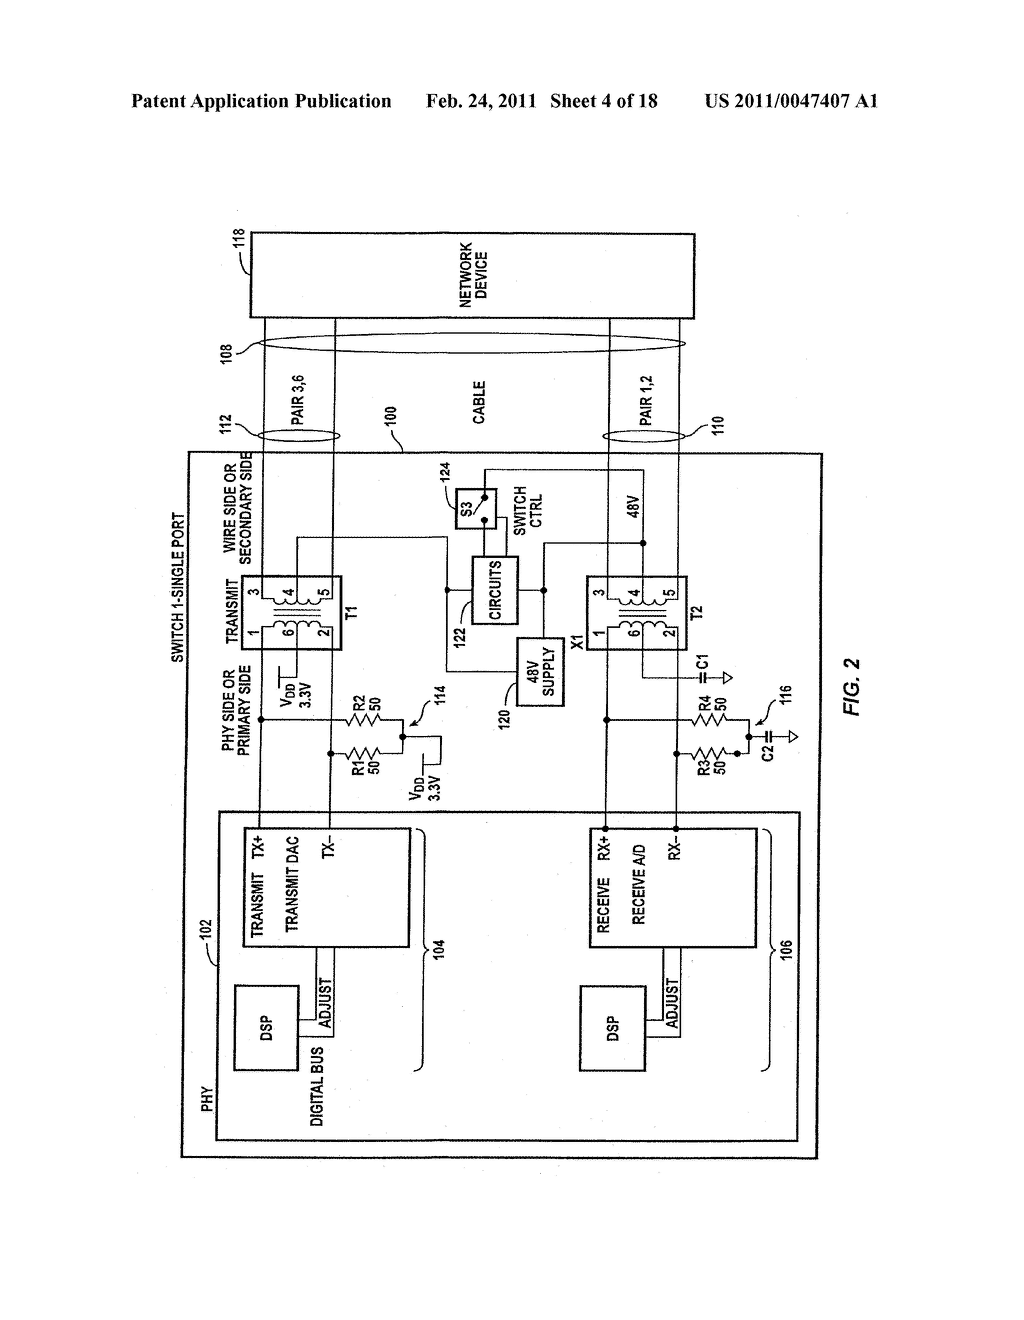 wiring closet diagram diy wiring diagrams u2022 rh dancesalsa co New Home Wiring Diagram Ethernet Wiring Diagram